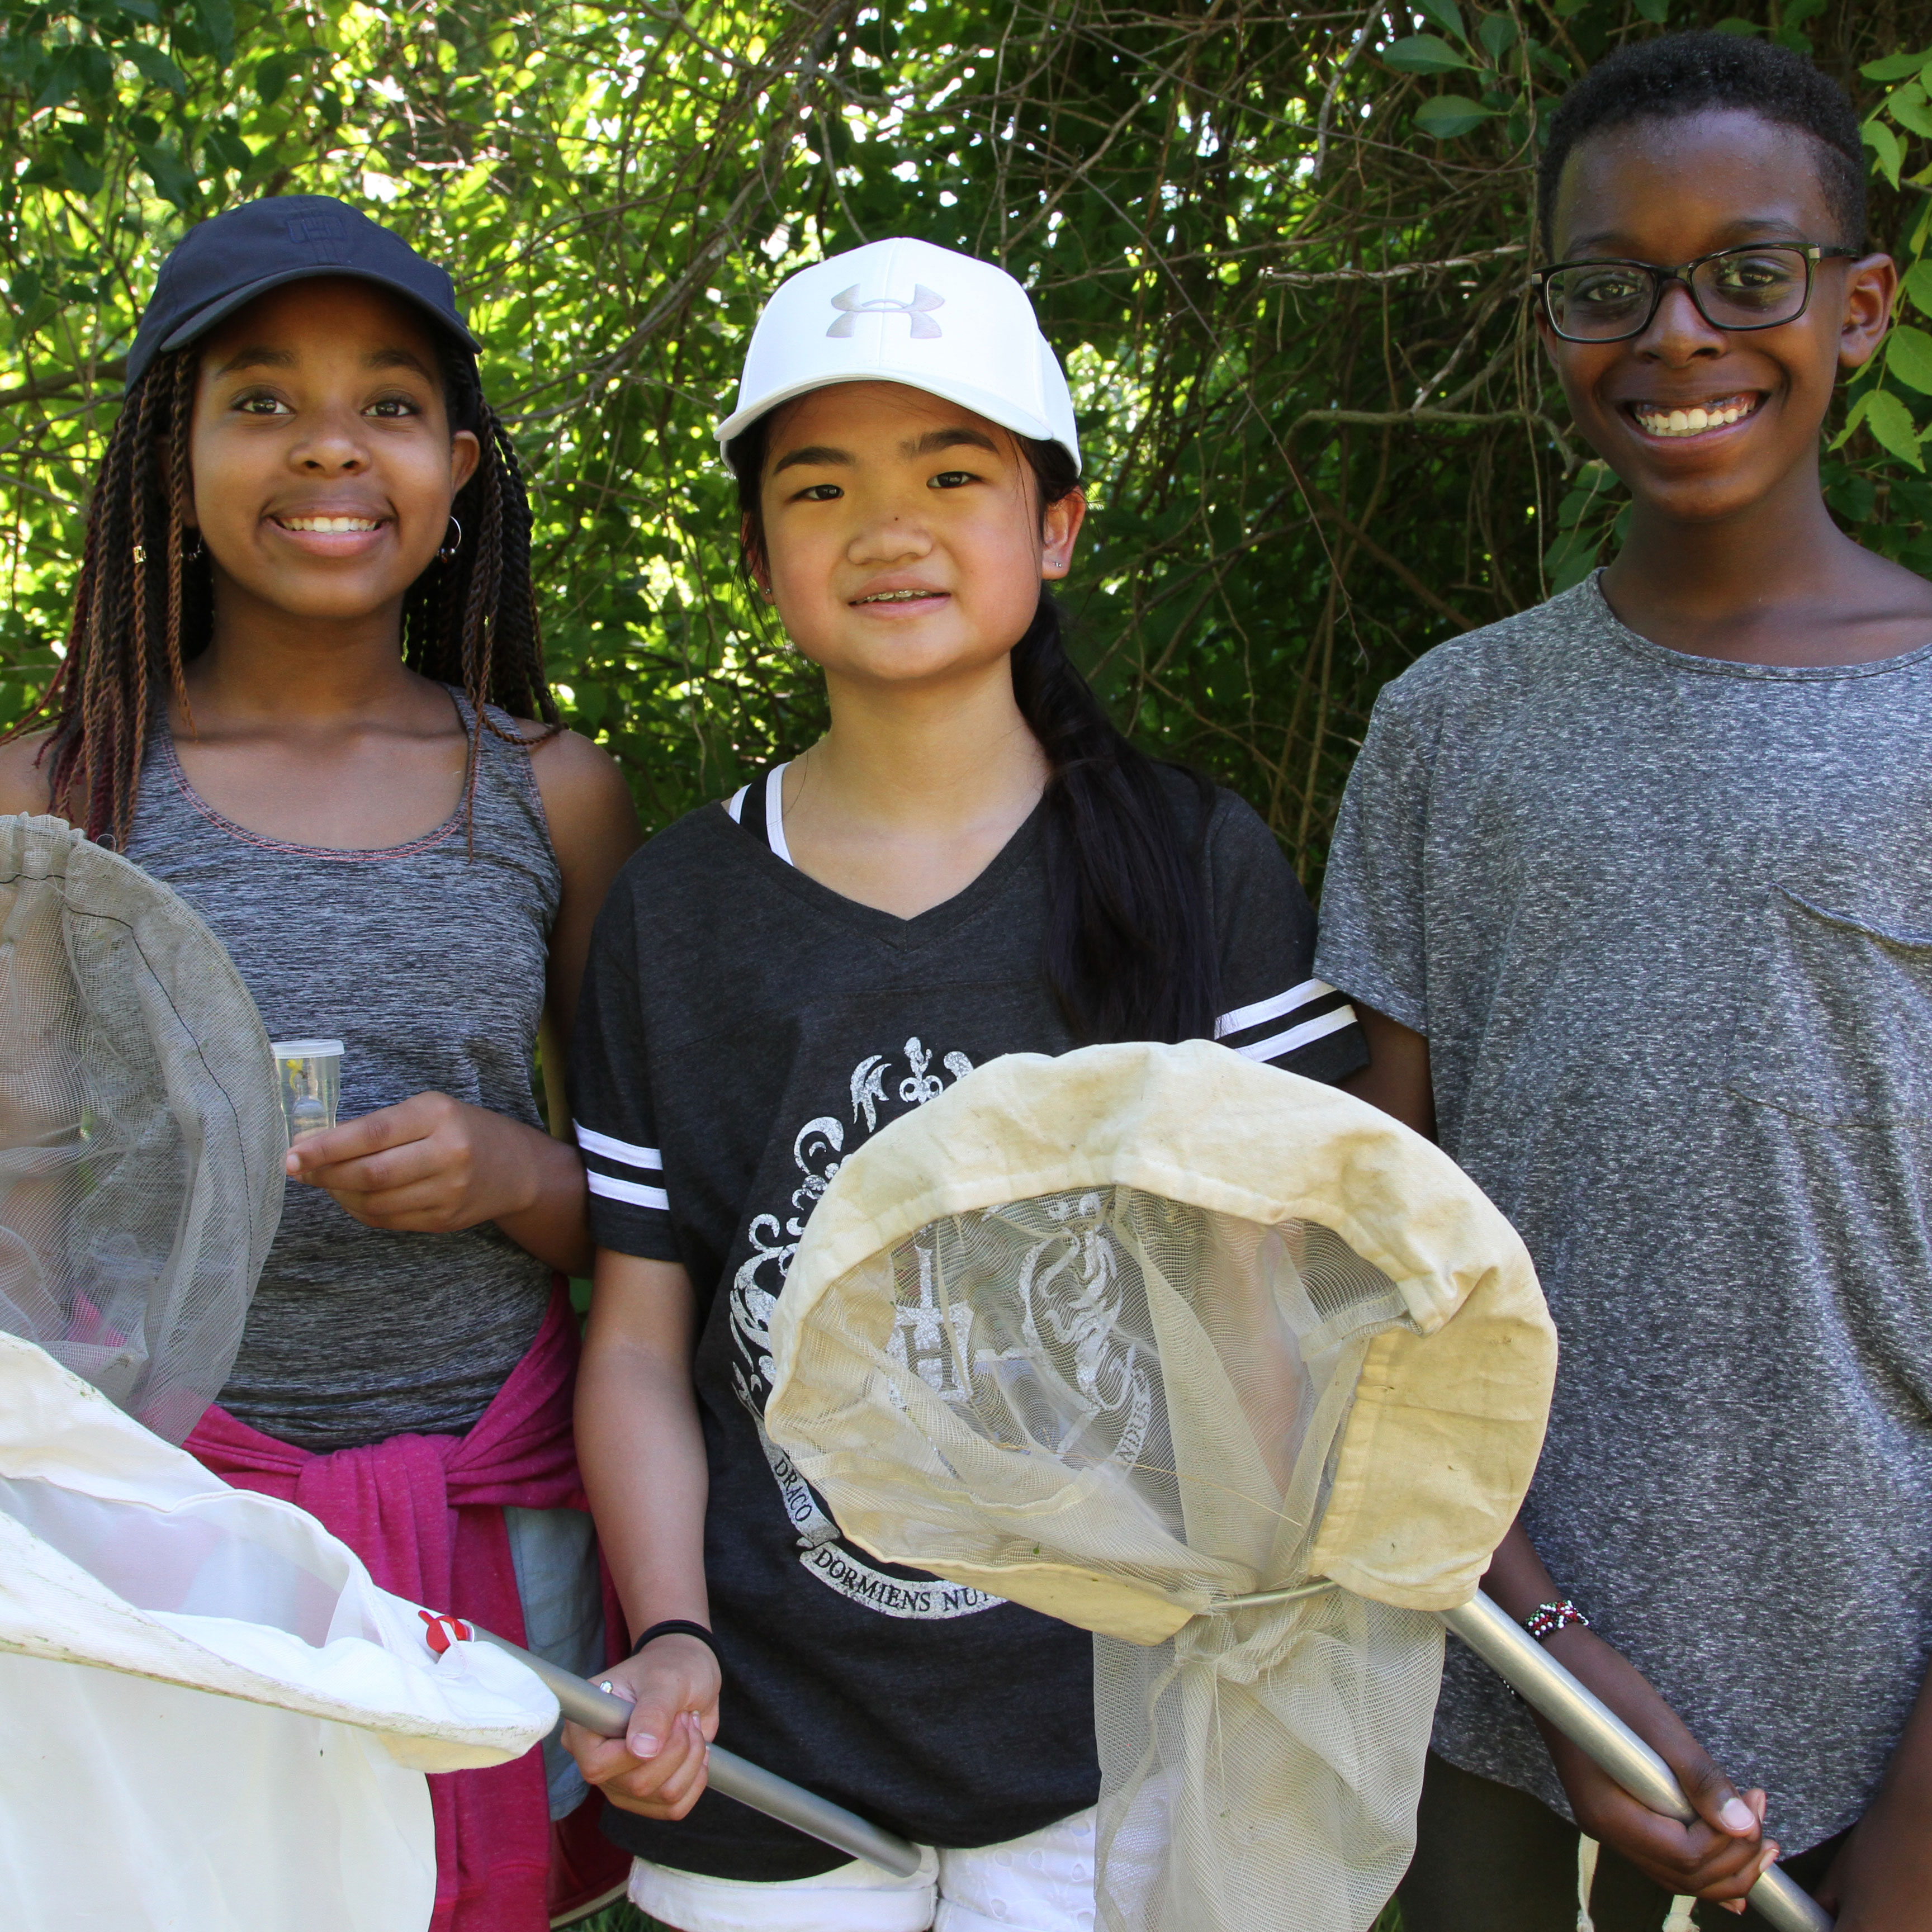 School-age kids holding nets on a field trip with the Tsongas Industrial History Center